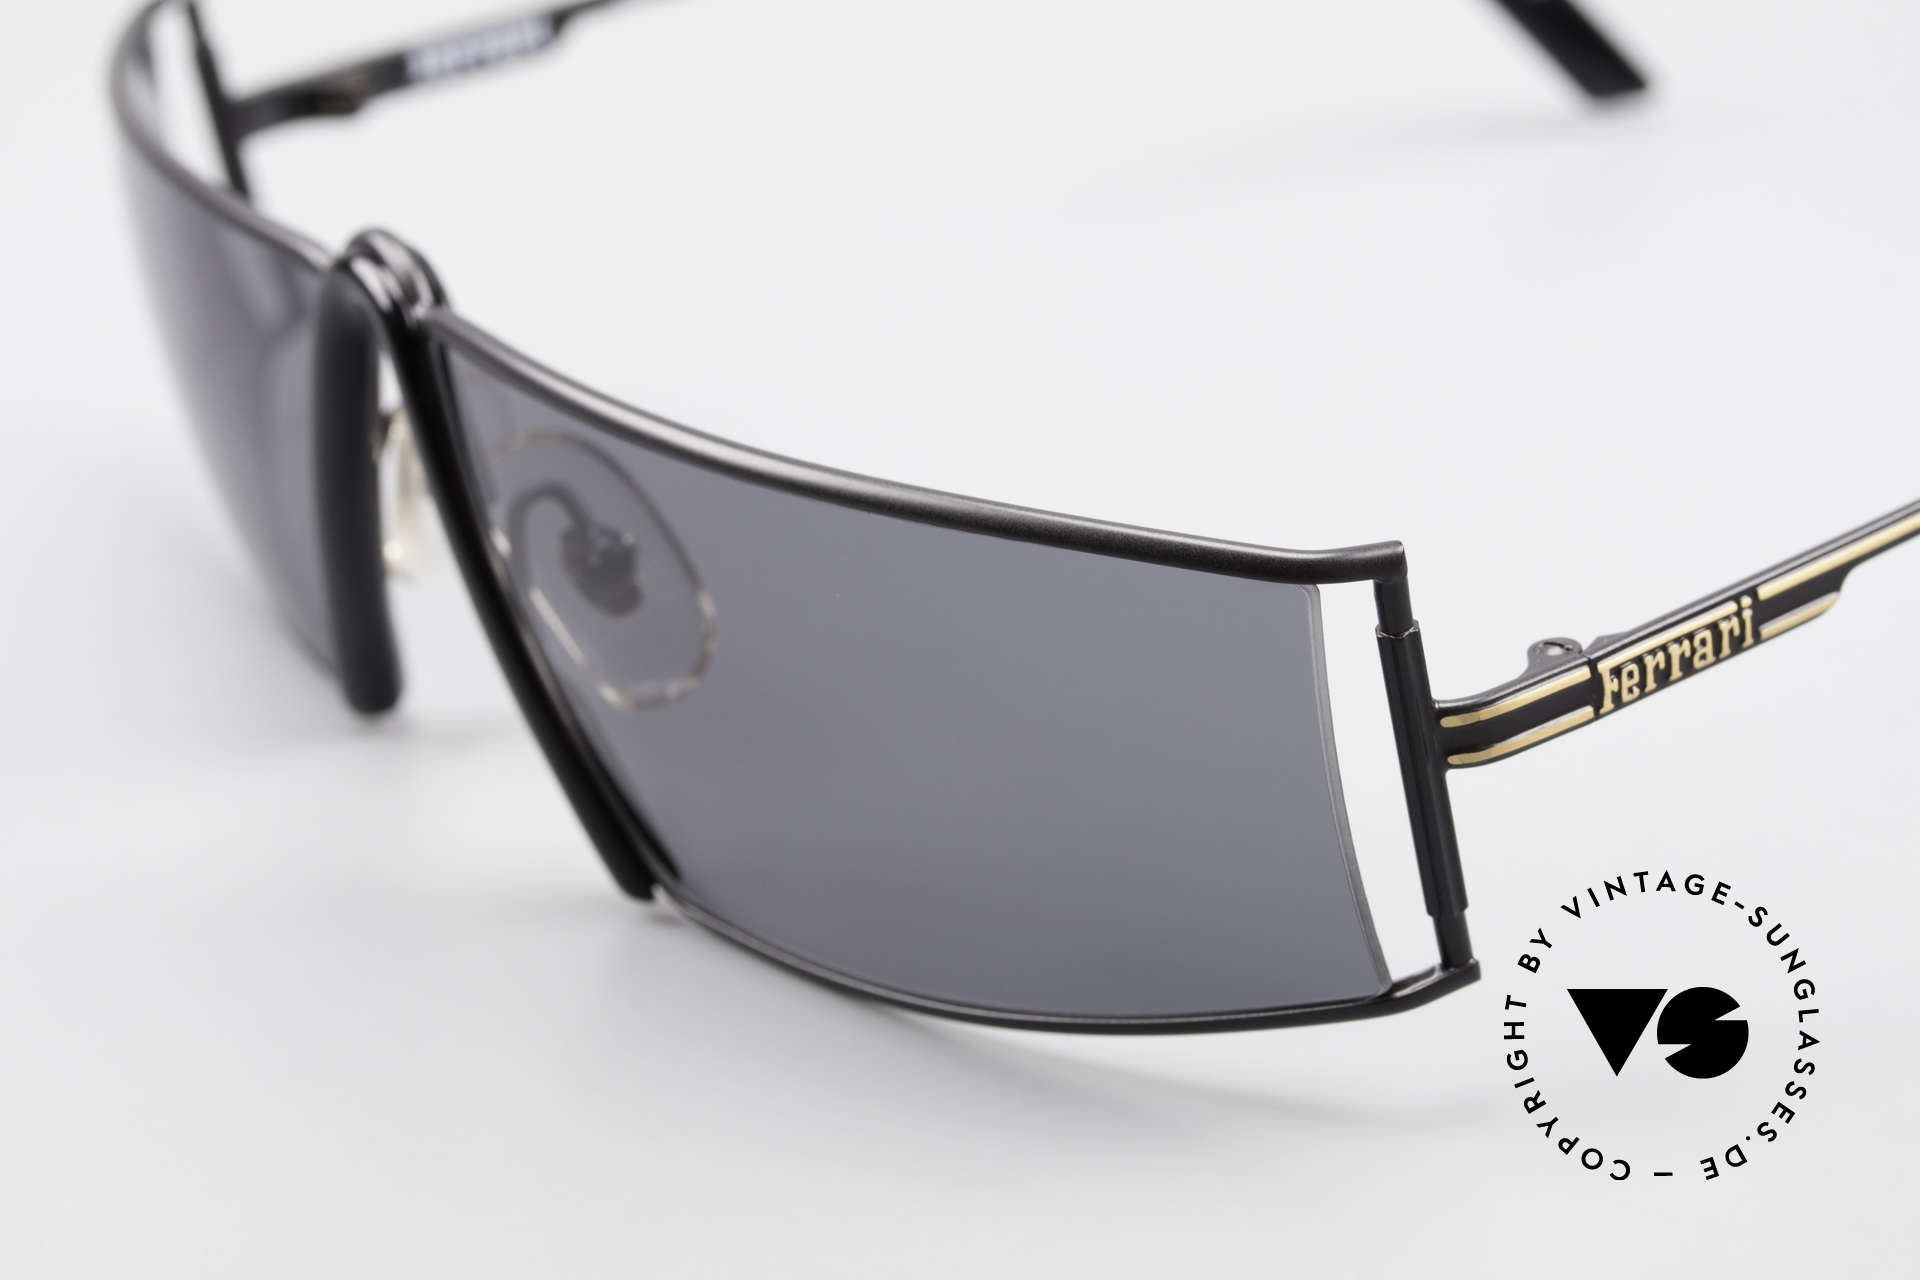 Ferrari F19/S Shades Like XL Reading Specs, precious designer sunglasses from the early 1990's, Made for Men